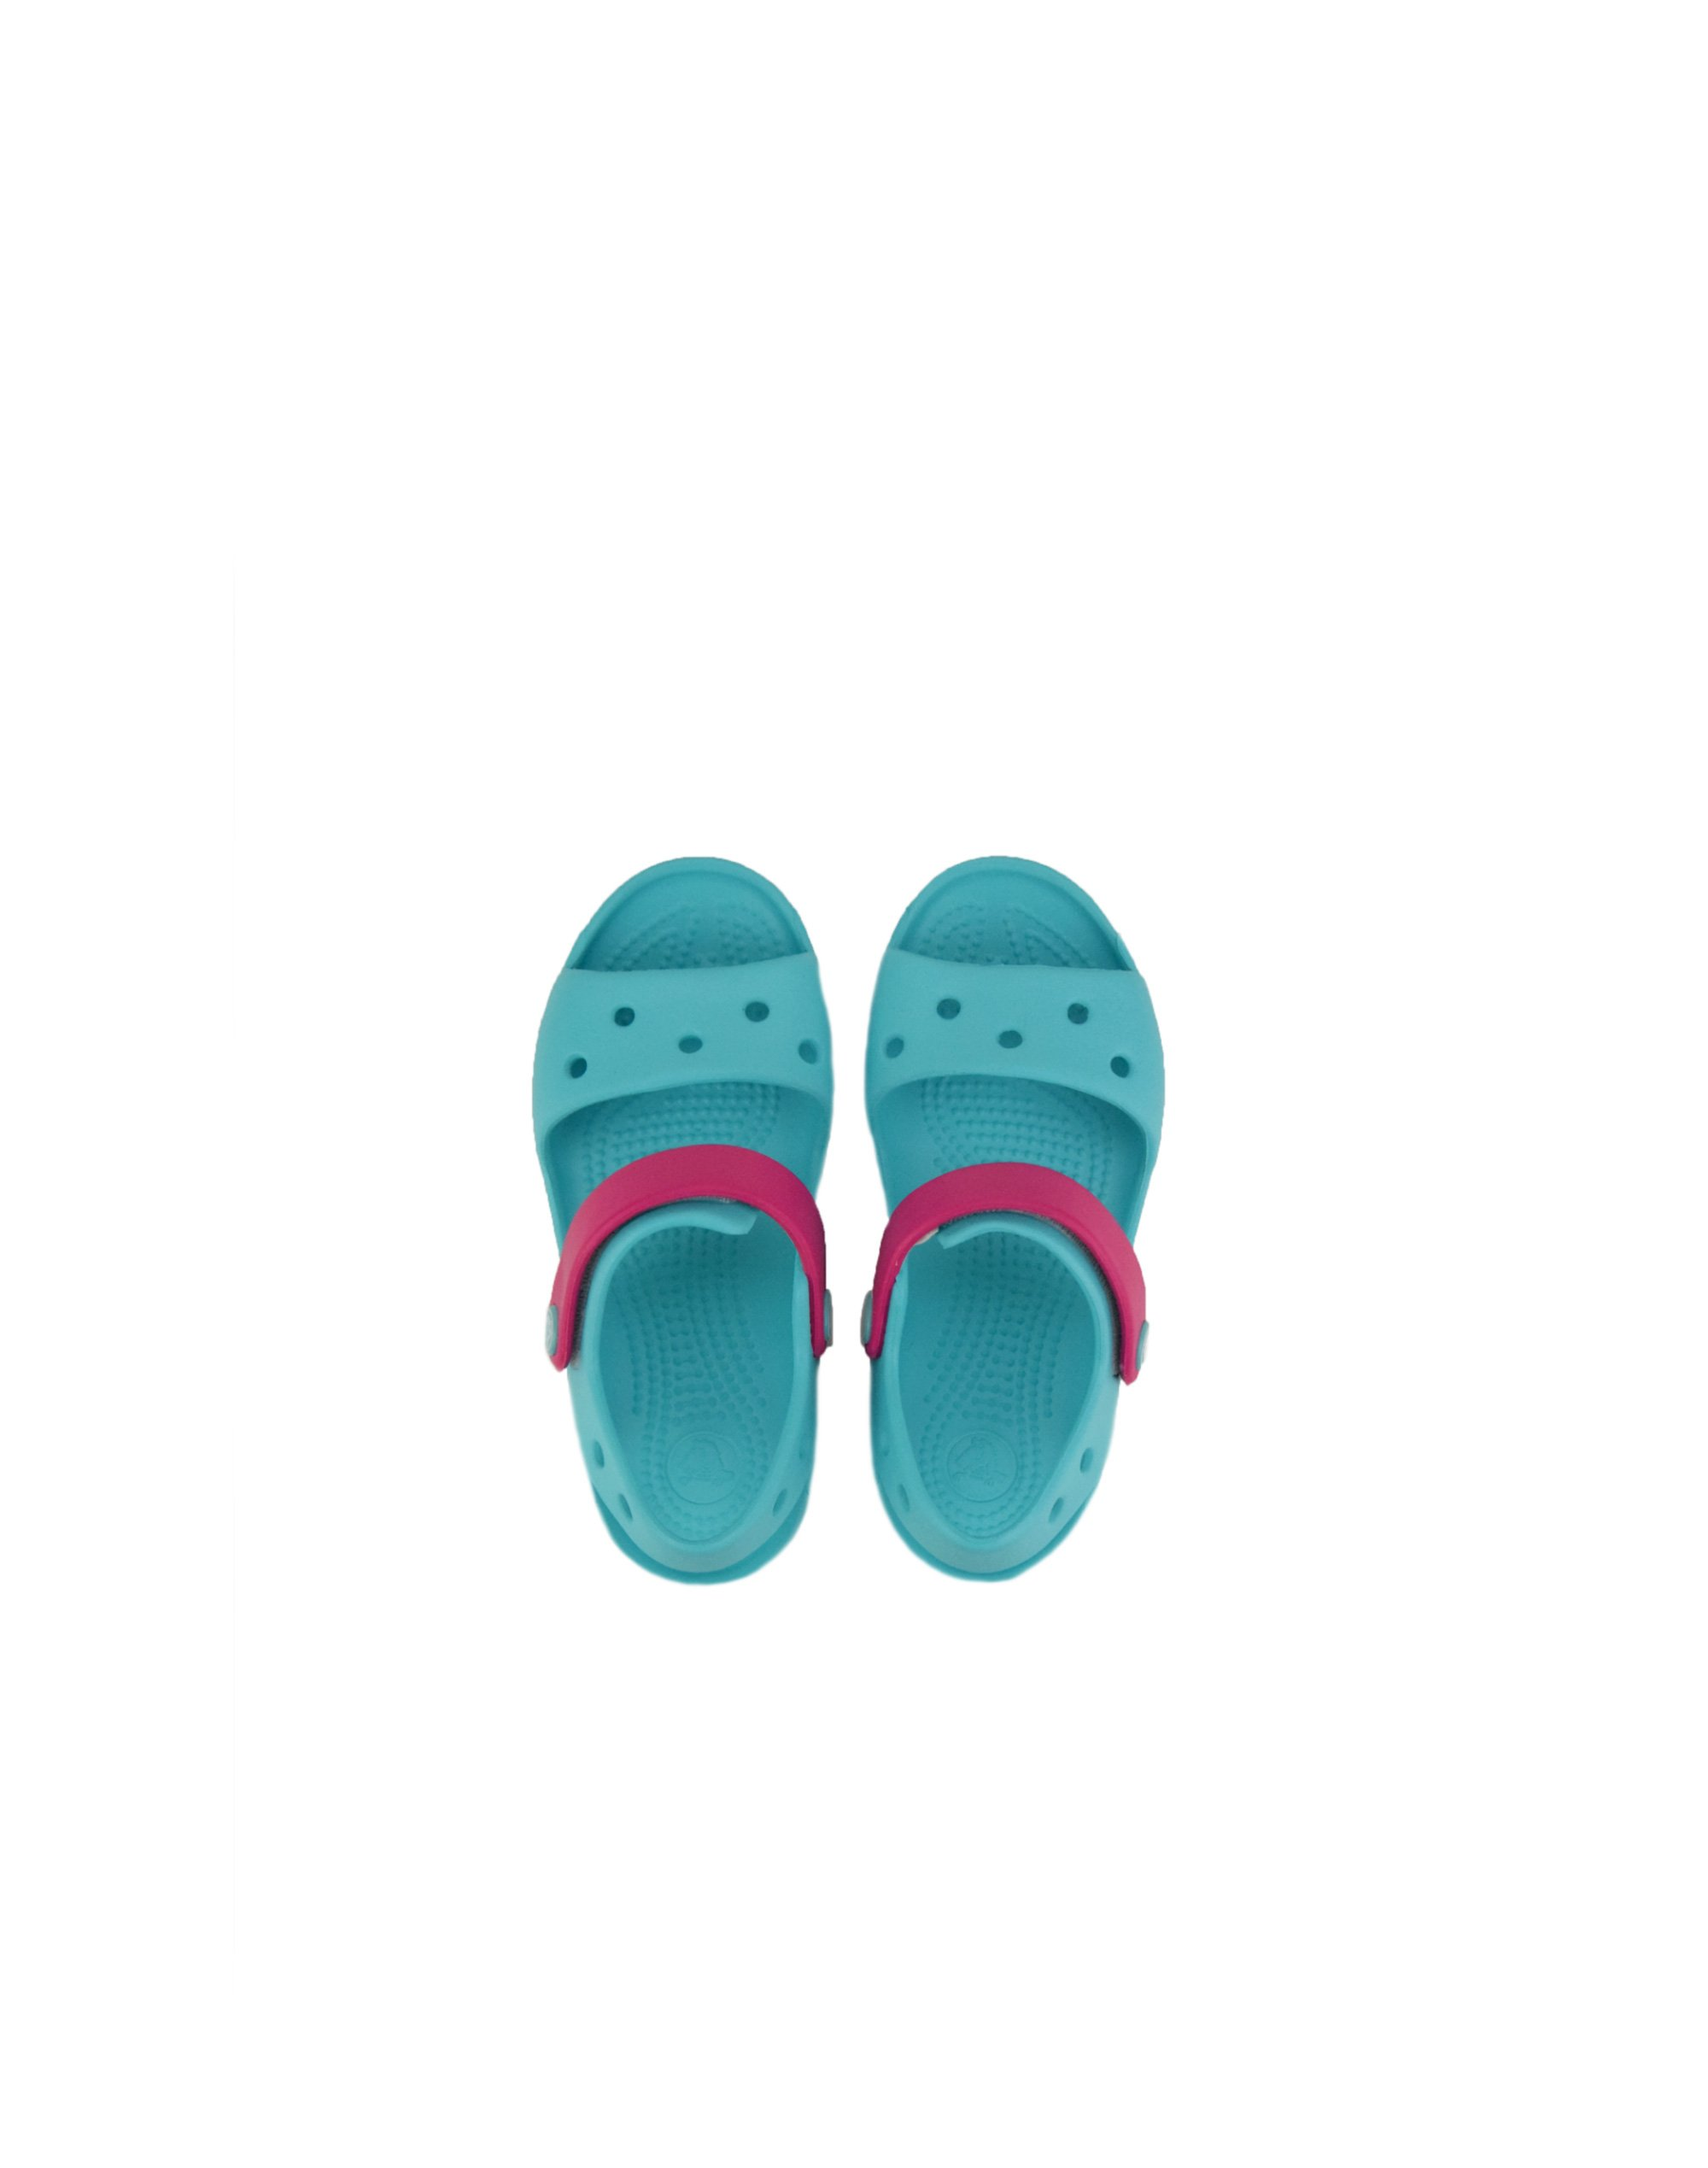 Crocs Crocband Sandal Kids (12856-4FV) Pool/Candy Pink